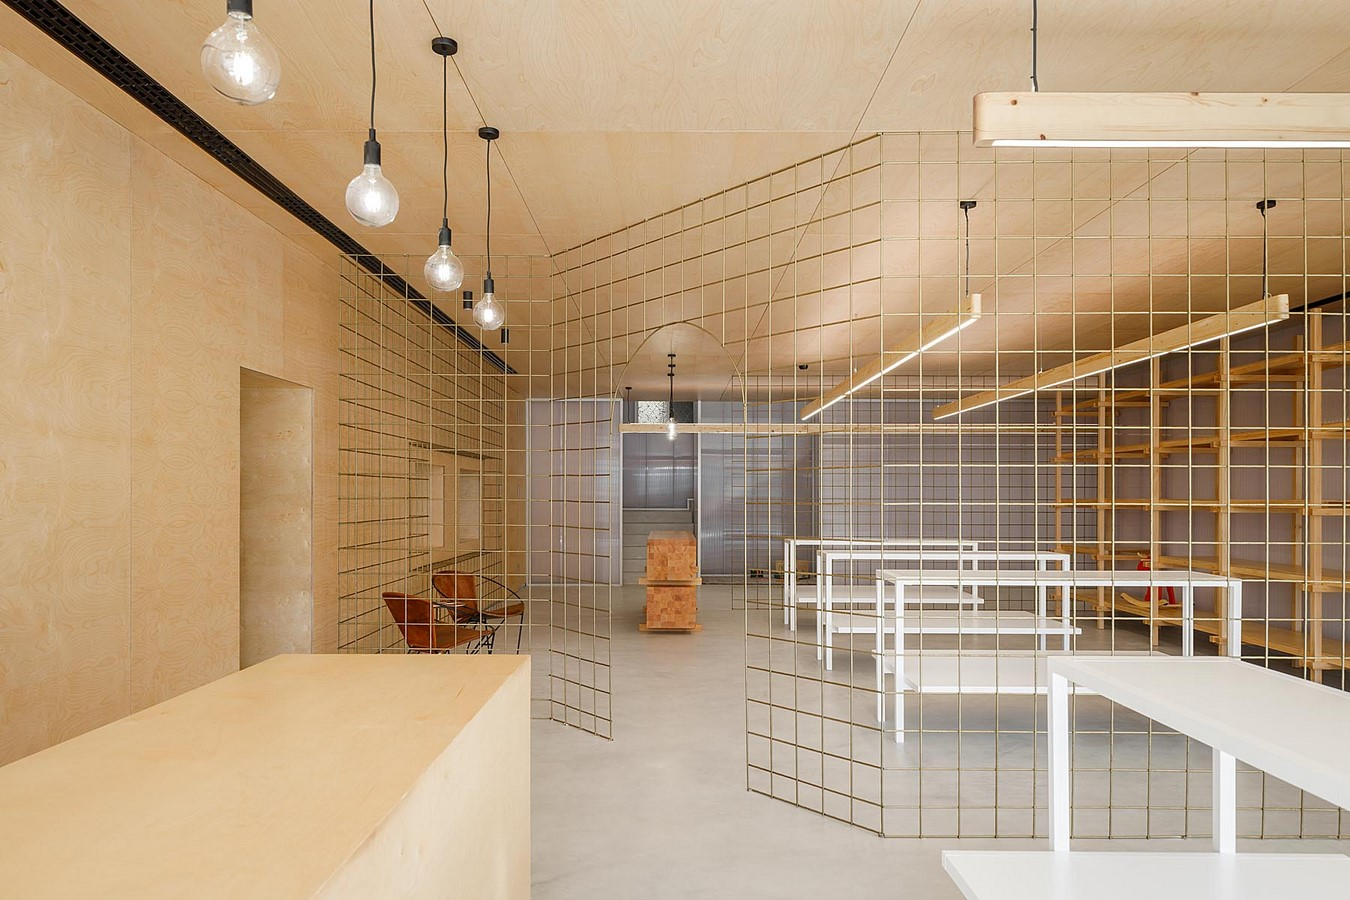 Interior Space divided with Golden Wire Meshes For Multiple Uses In This Store In Portugal by Stu.Dere- Sheet2